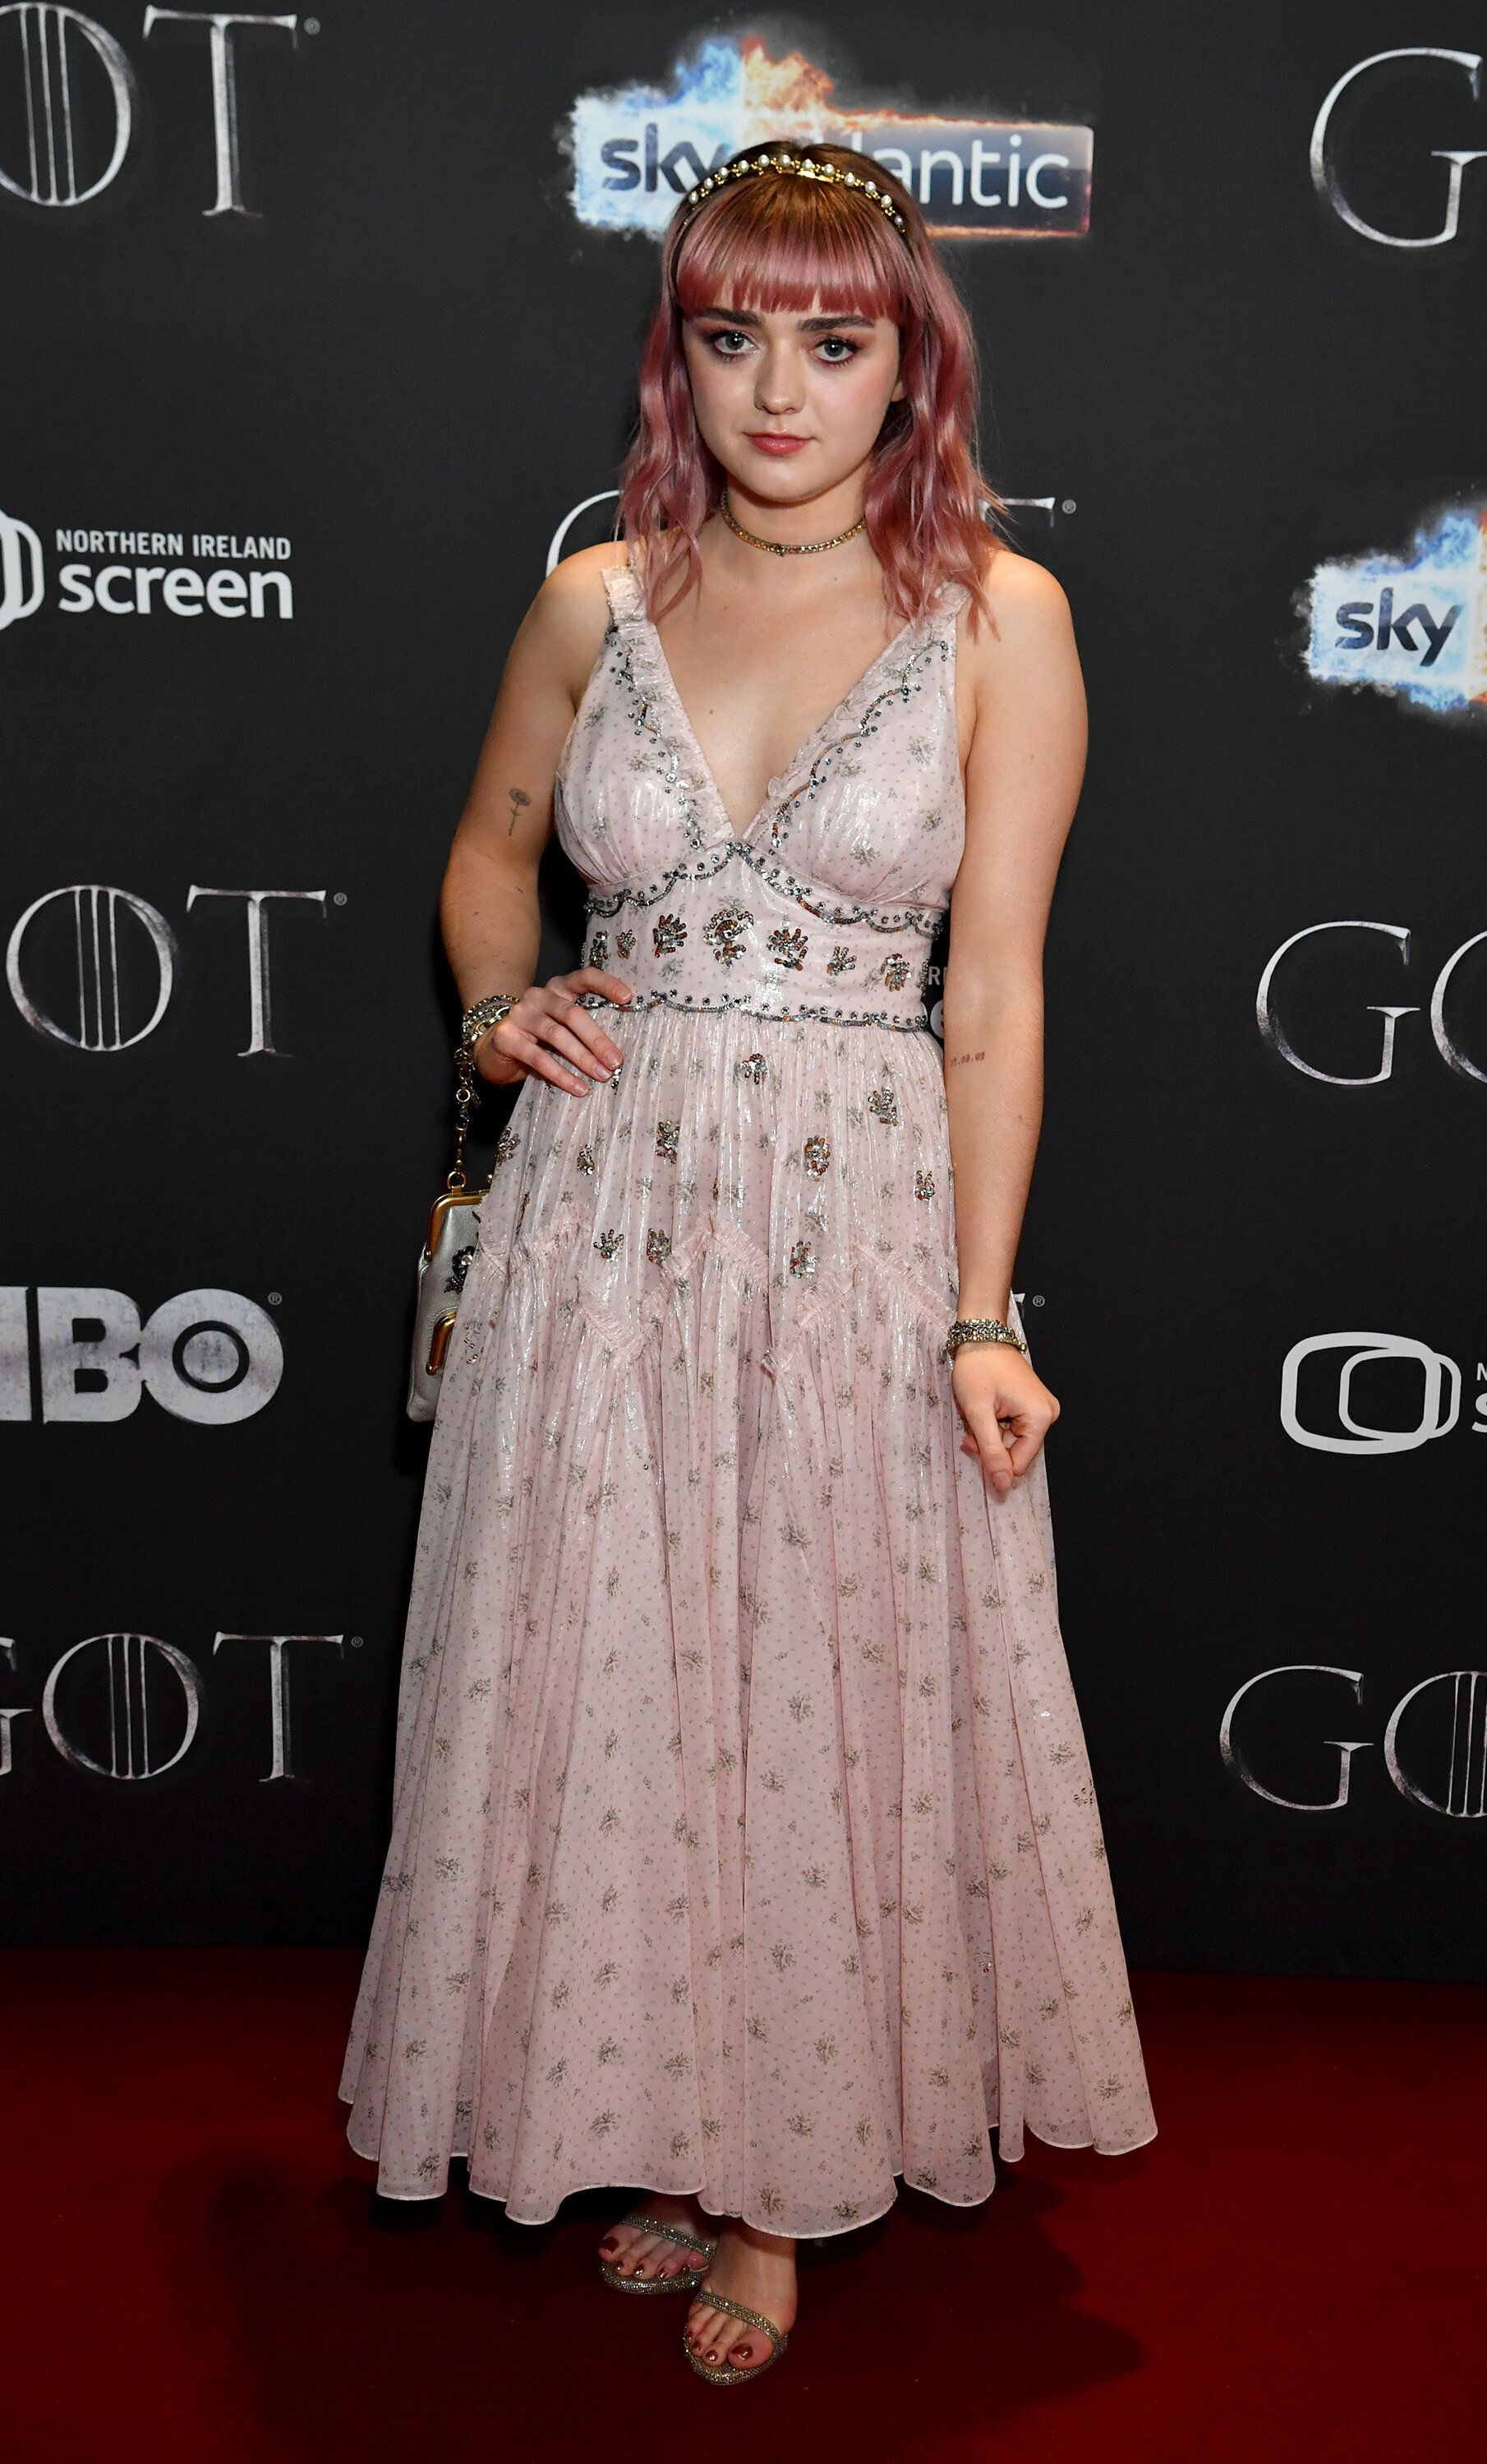 BELFAST, NORTHERN IRELAND - APRIL 12: Maisie Williams arrives at the Game of Thrones Season Finale Premiere at the Waterfront Hall on April 12, 2019 in Belfast, Northern Ireland.  (Photo by Jeff Kravitz/FilmMagic for HBO)